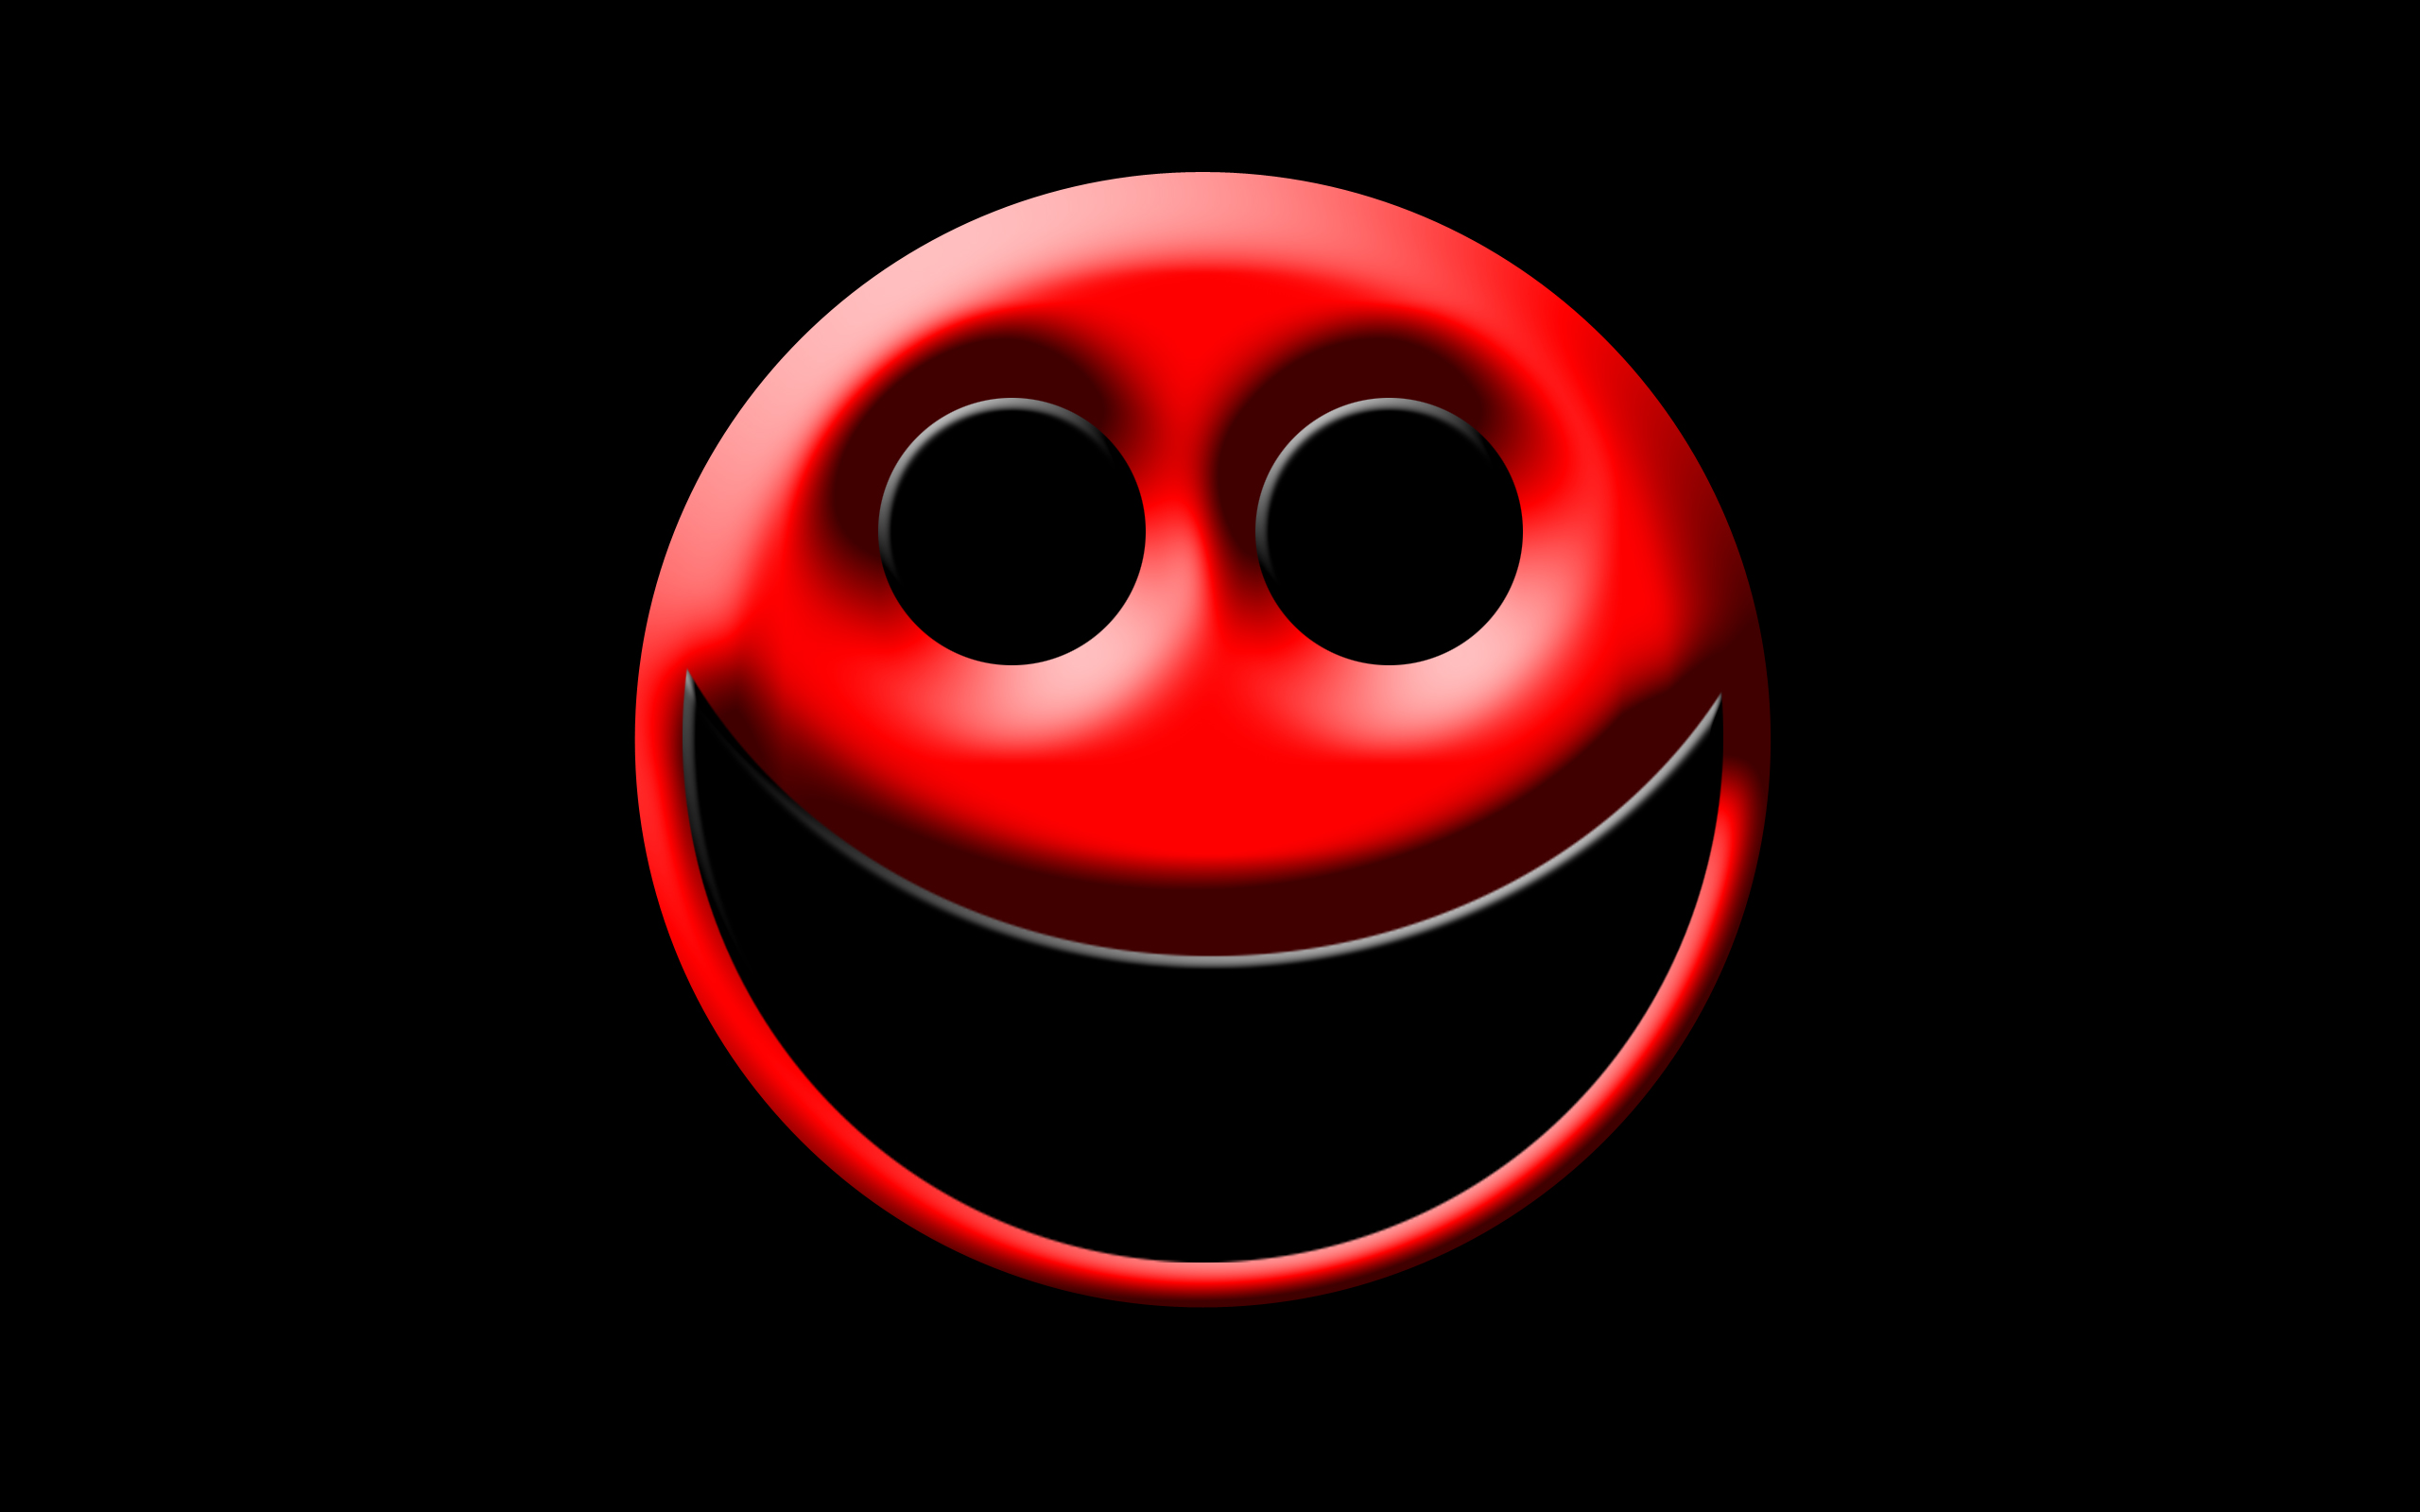 Wallpaper iphone black red - Wallpaper 24 Smiley Red And Black Wallpapers